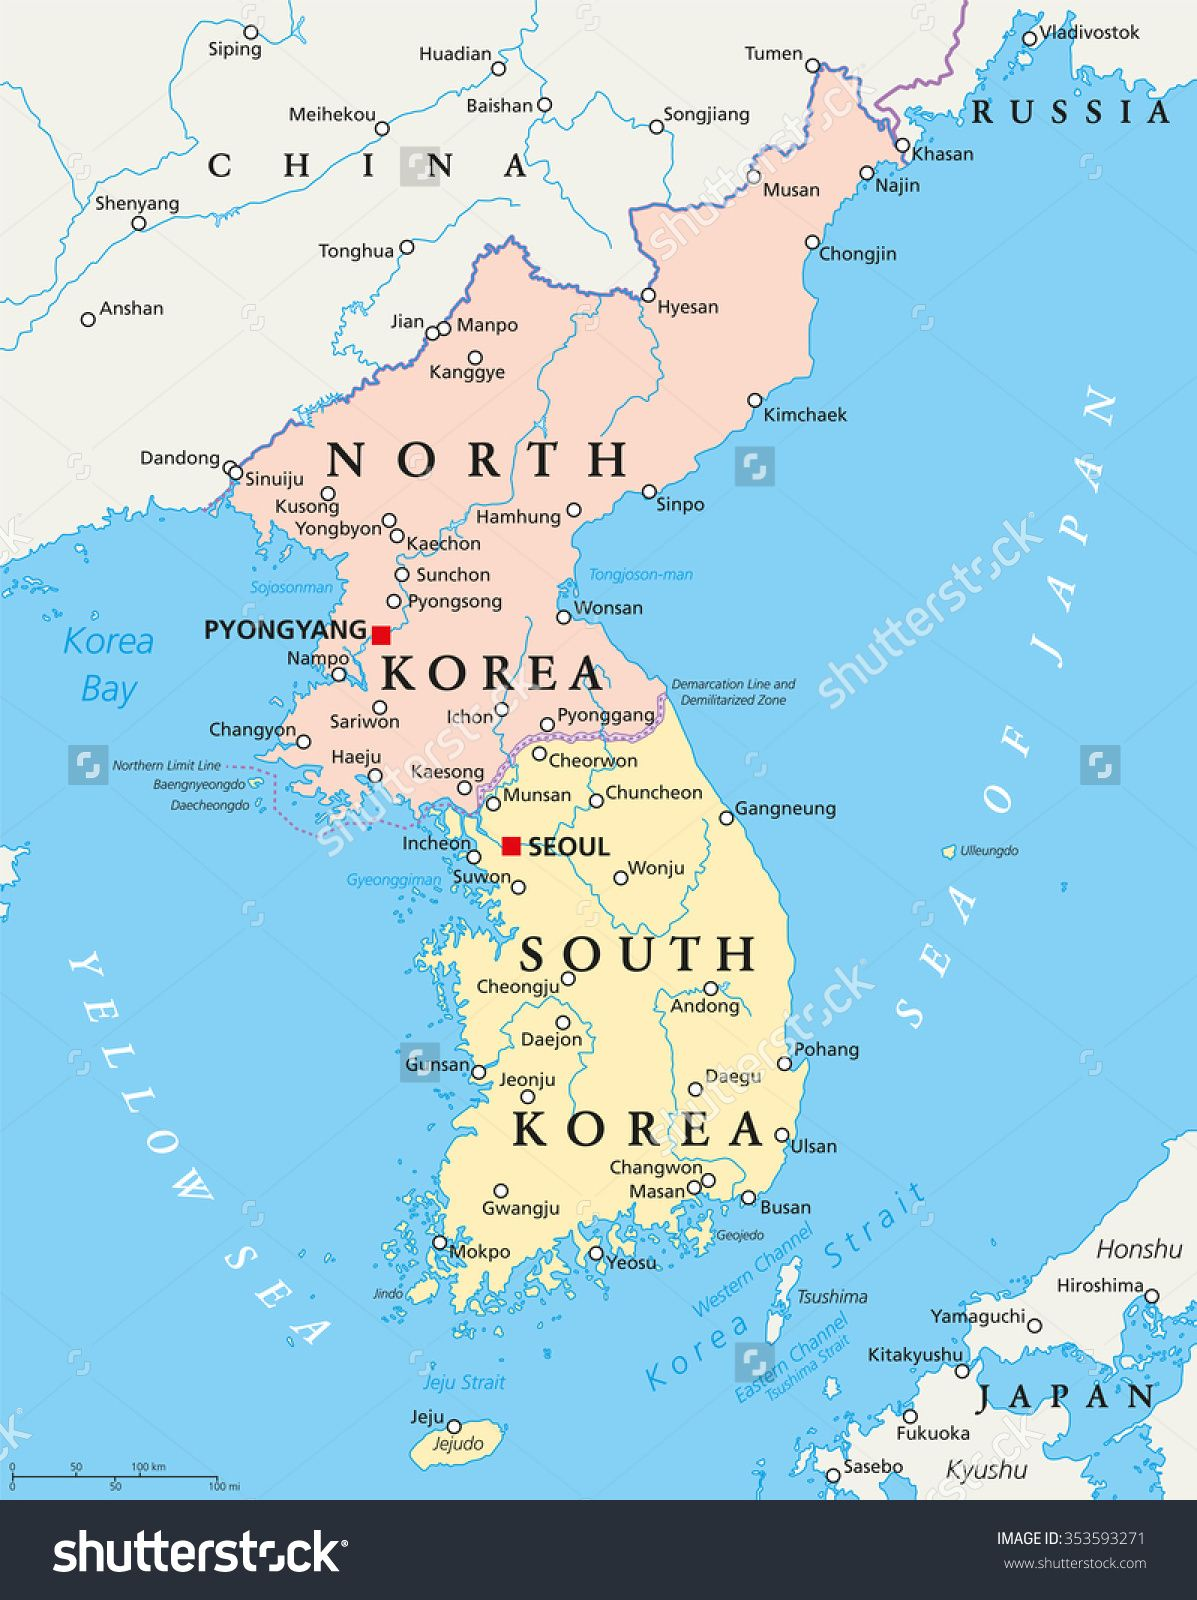 Image result for maps showing north and south korea border borders image result for maps showing north and south korea border gumiabroncs Images